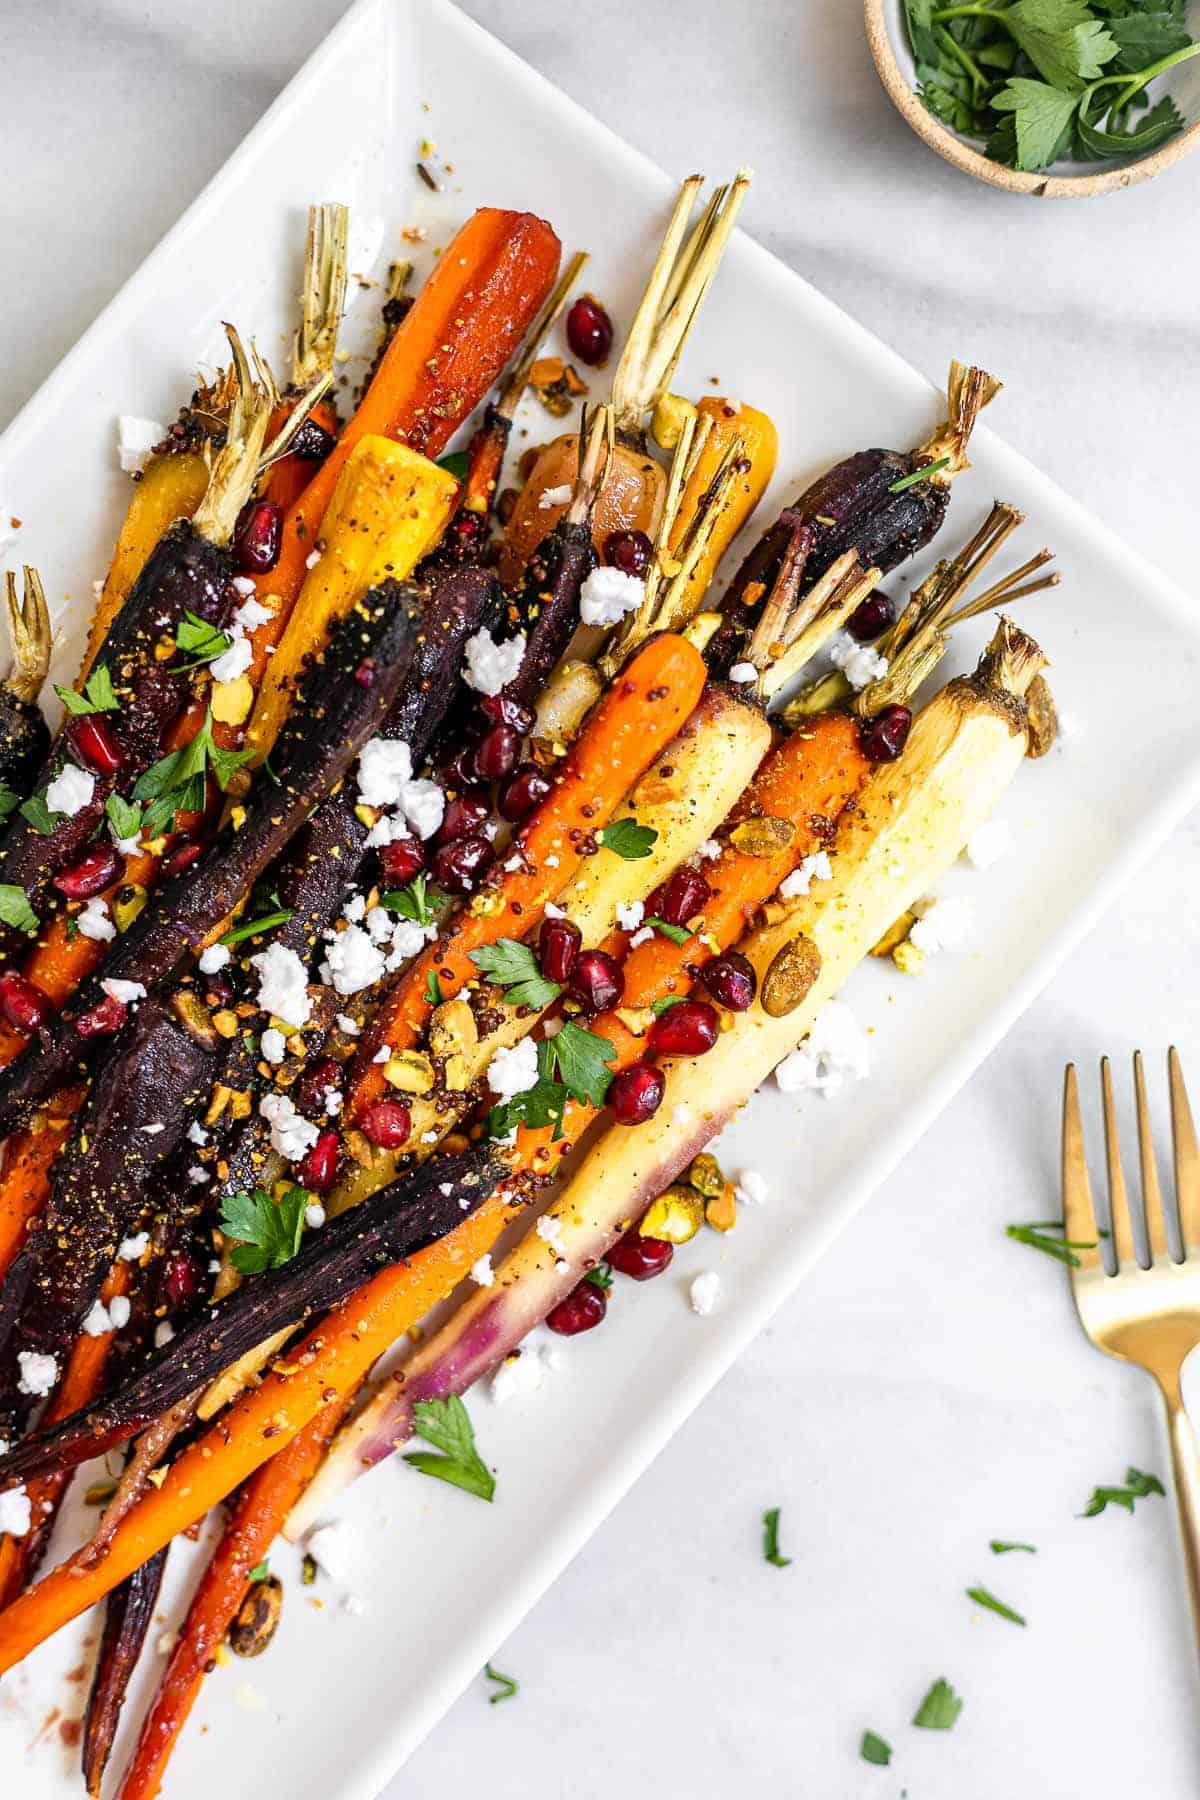 Final rainbow roasted maple glazed carrots with pistachios and feta.